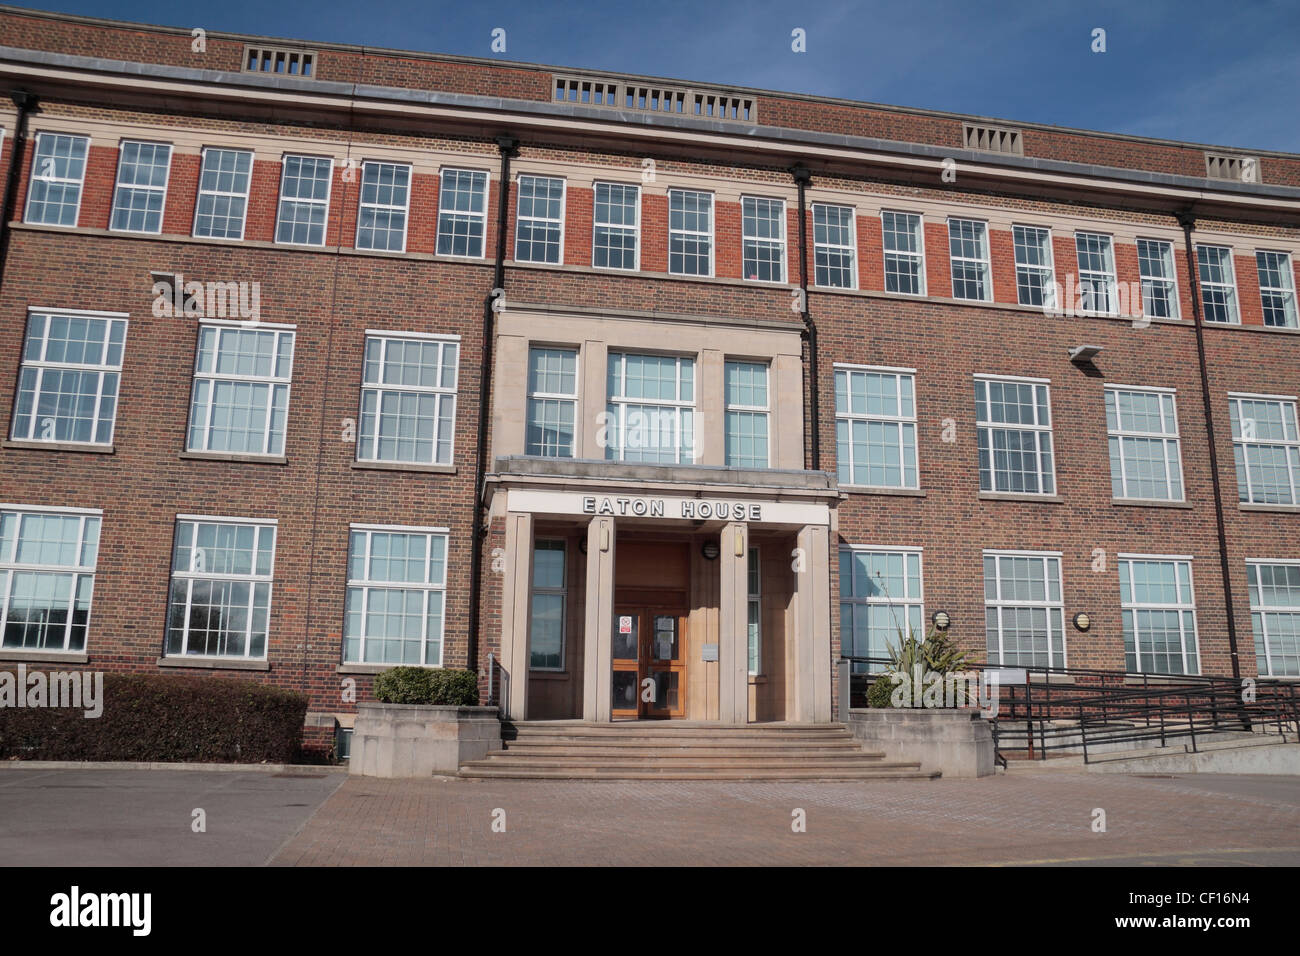 Main entrance of eaton house a uk border agency home office stock photo 43667824 alamy - London immigration office ...